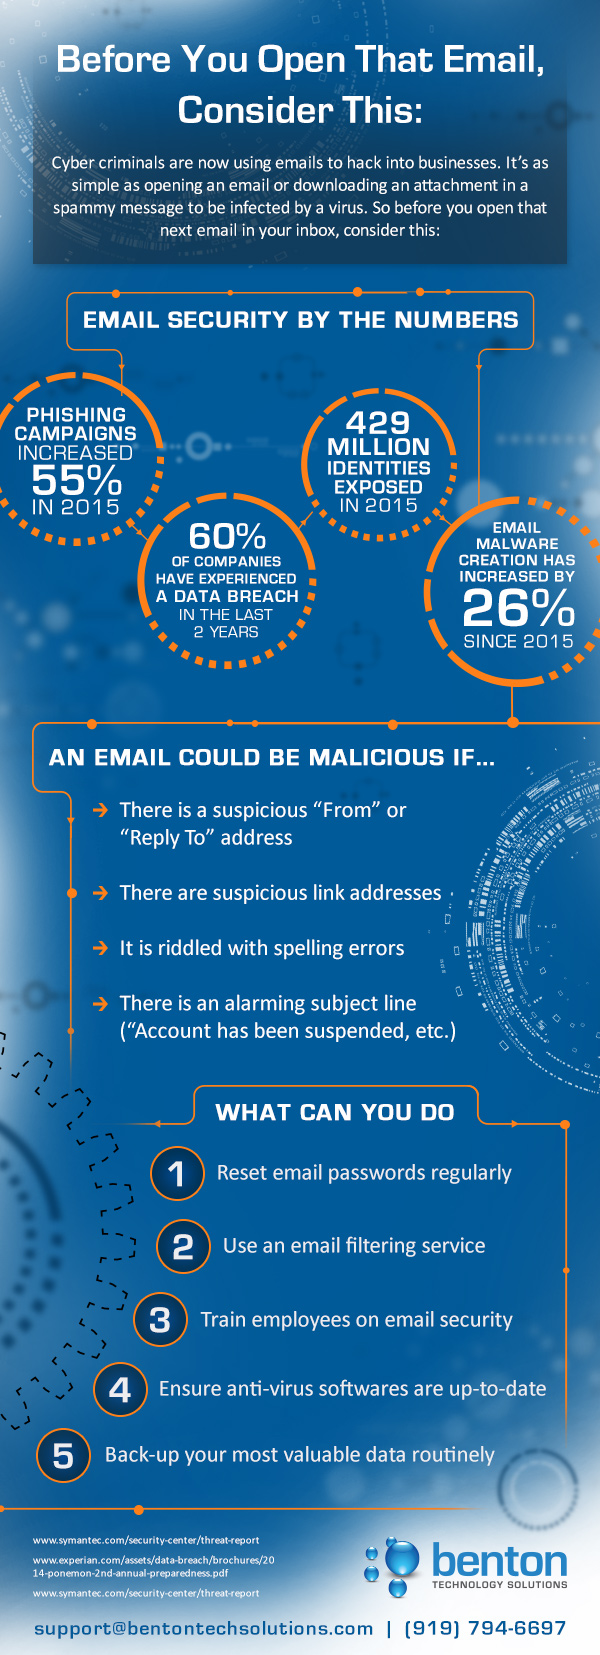 email-security-infographic